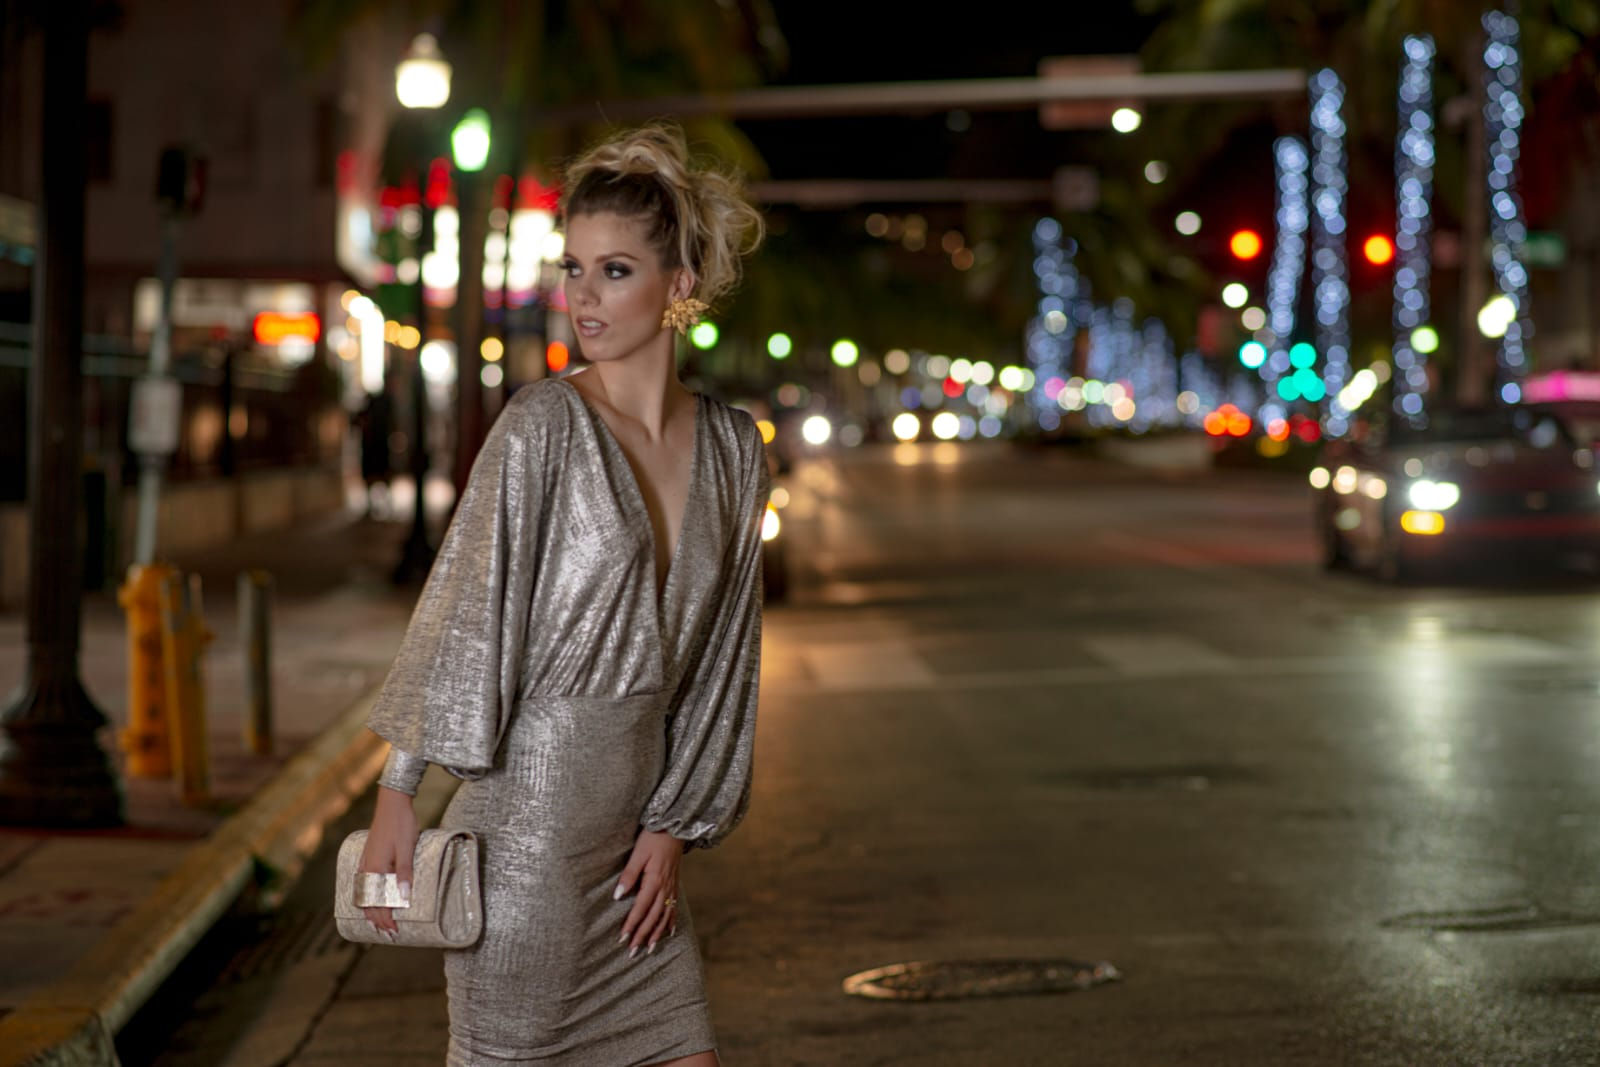 MIAMI FASHION DESIGNER REI GIRALDO